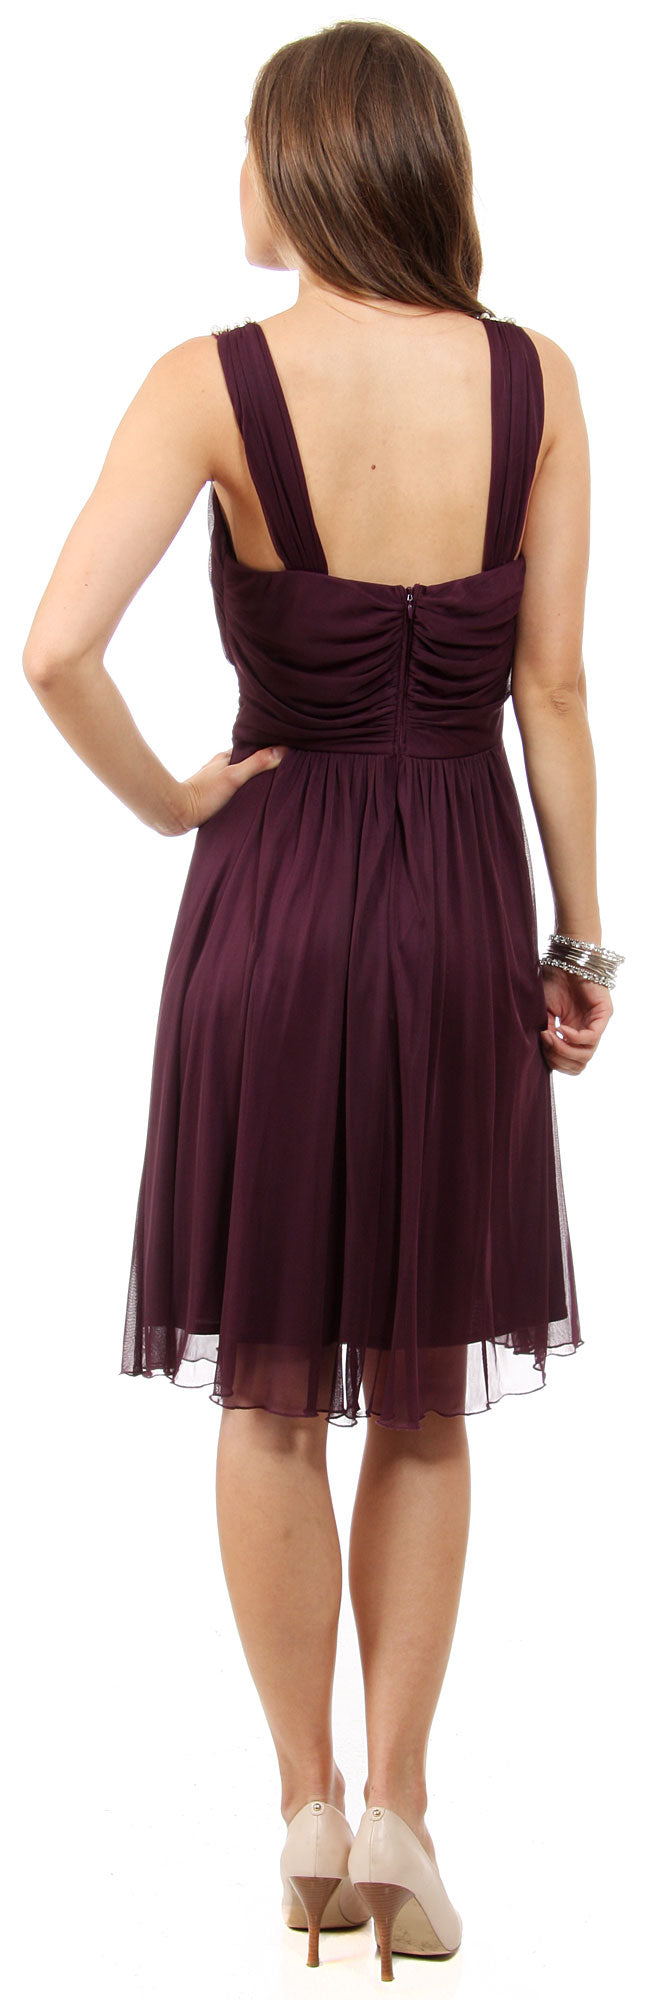 Image of U-neck Short Party Dress With Pearls & Diamond Accent back in Plum